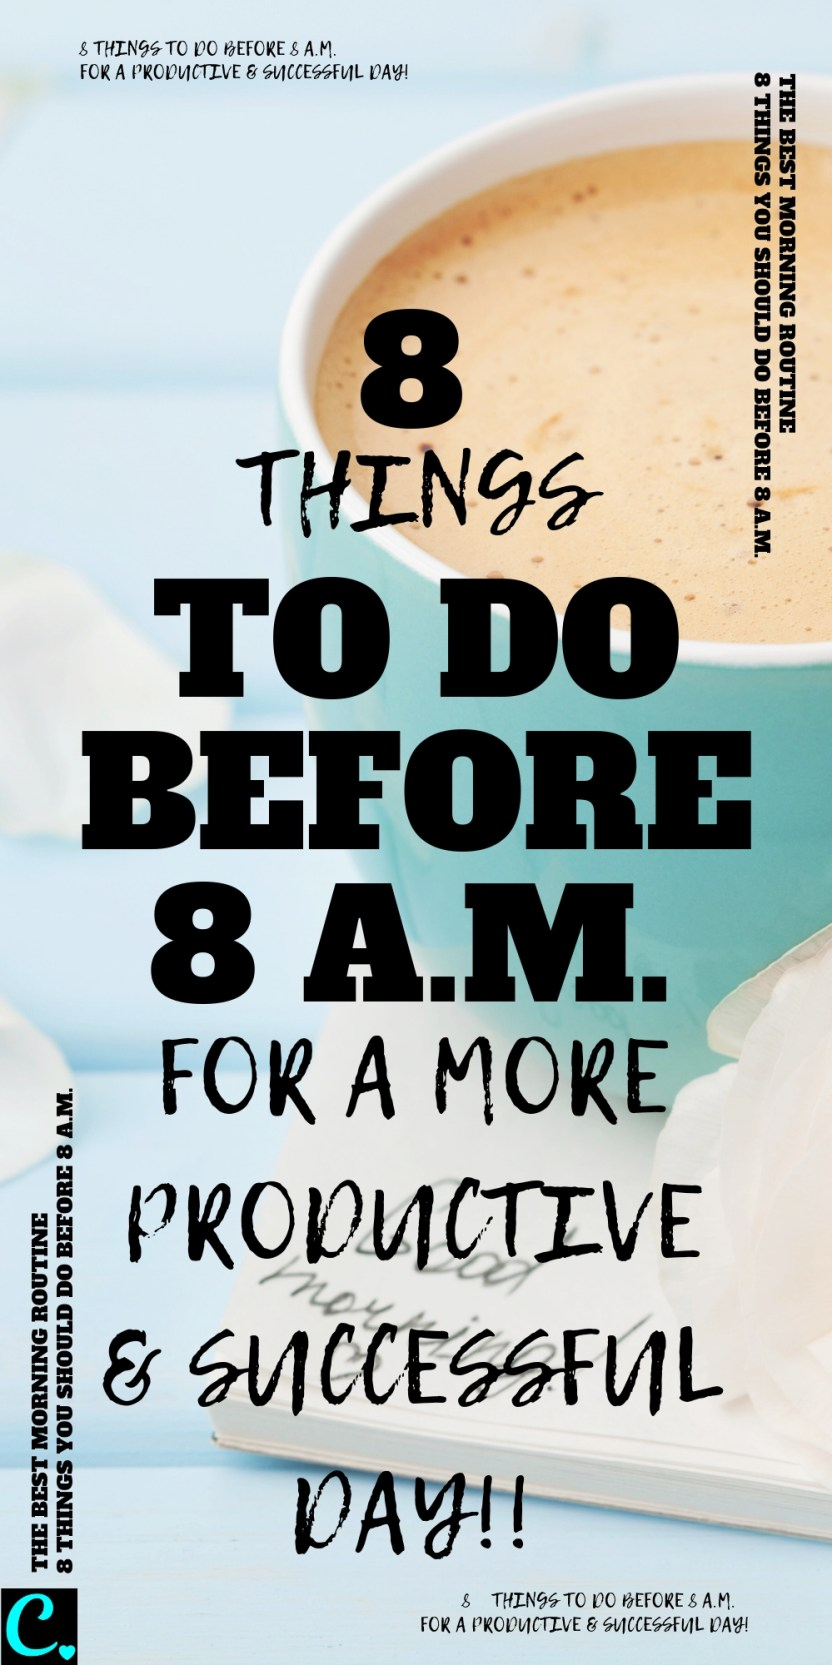 8 Things To Do Before 8am For A More Productive & Successful day | Good Morning Routine | Healthy morning routine | habits of successful people | productivity tips | Via: https://captivatingcrazy.com #productivitytips #morningroutine #goodhabits